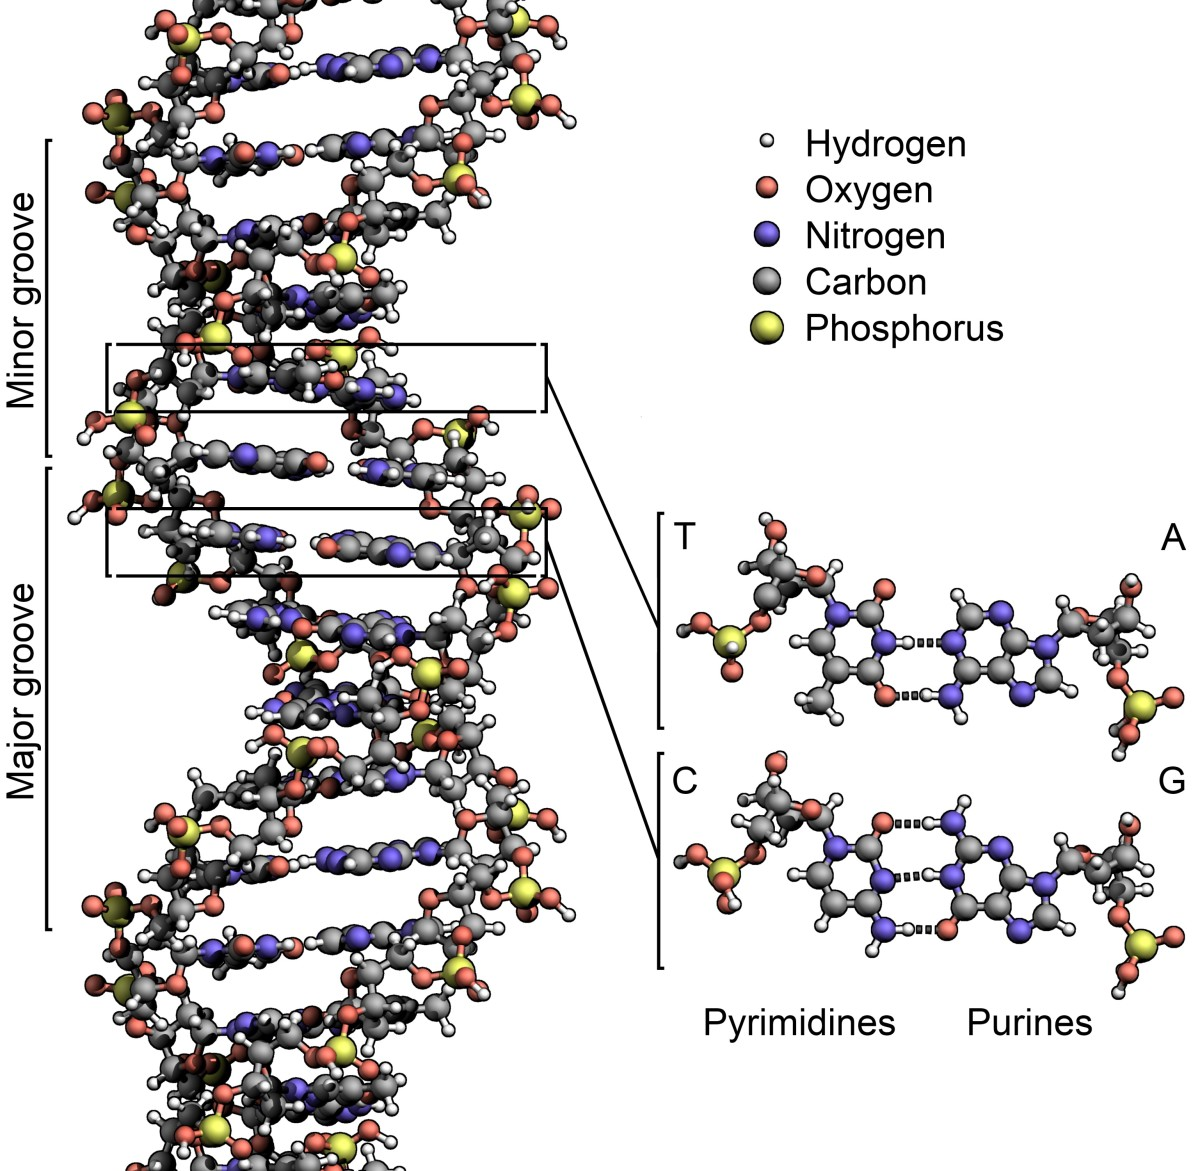 DNA is a long molecule with a complex structure. This illustration shows only a small section of the molecule.